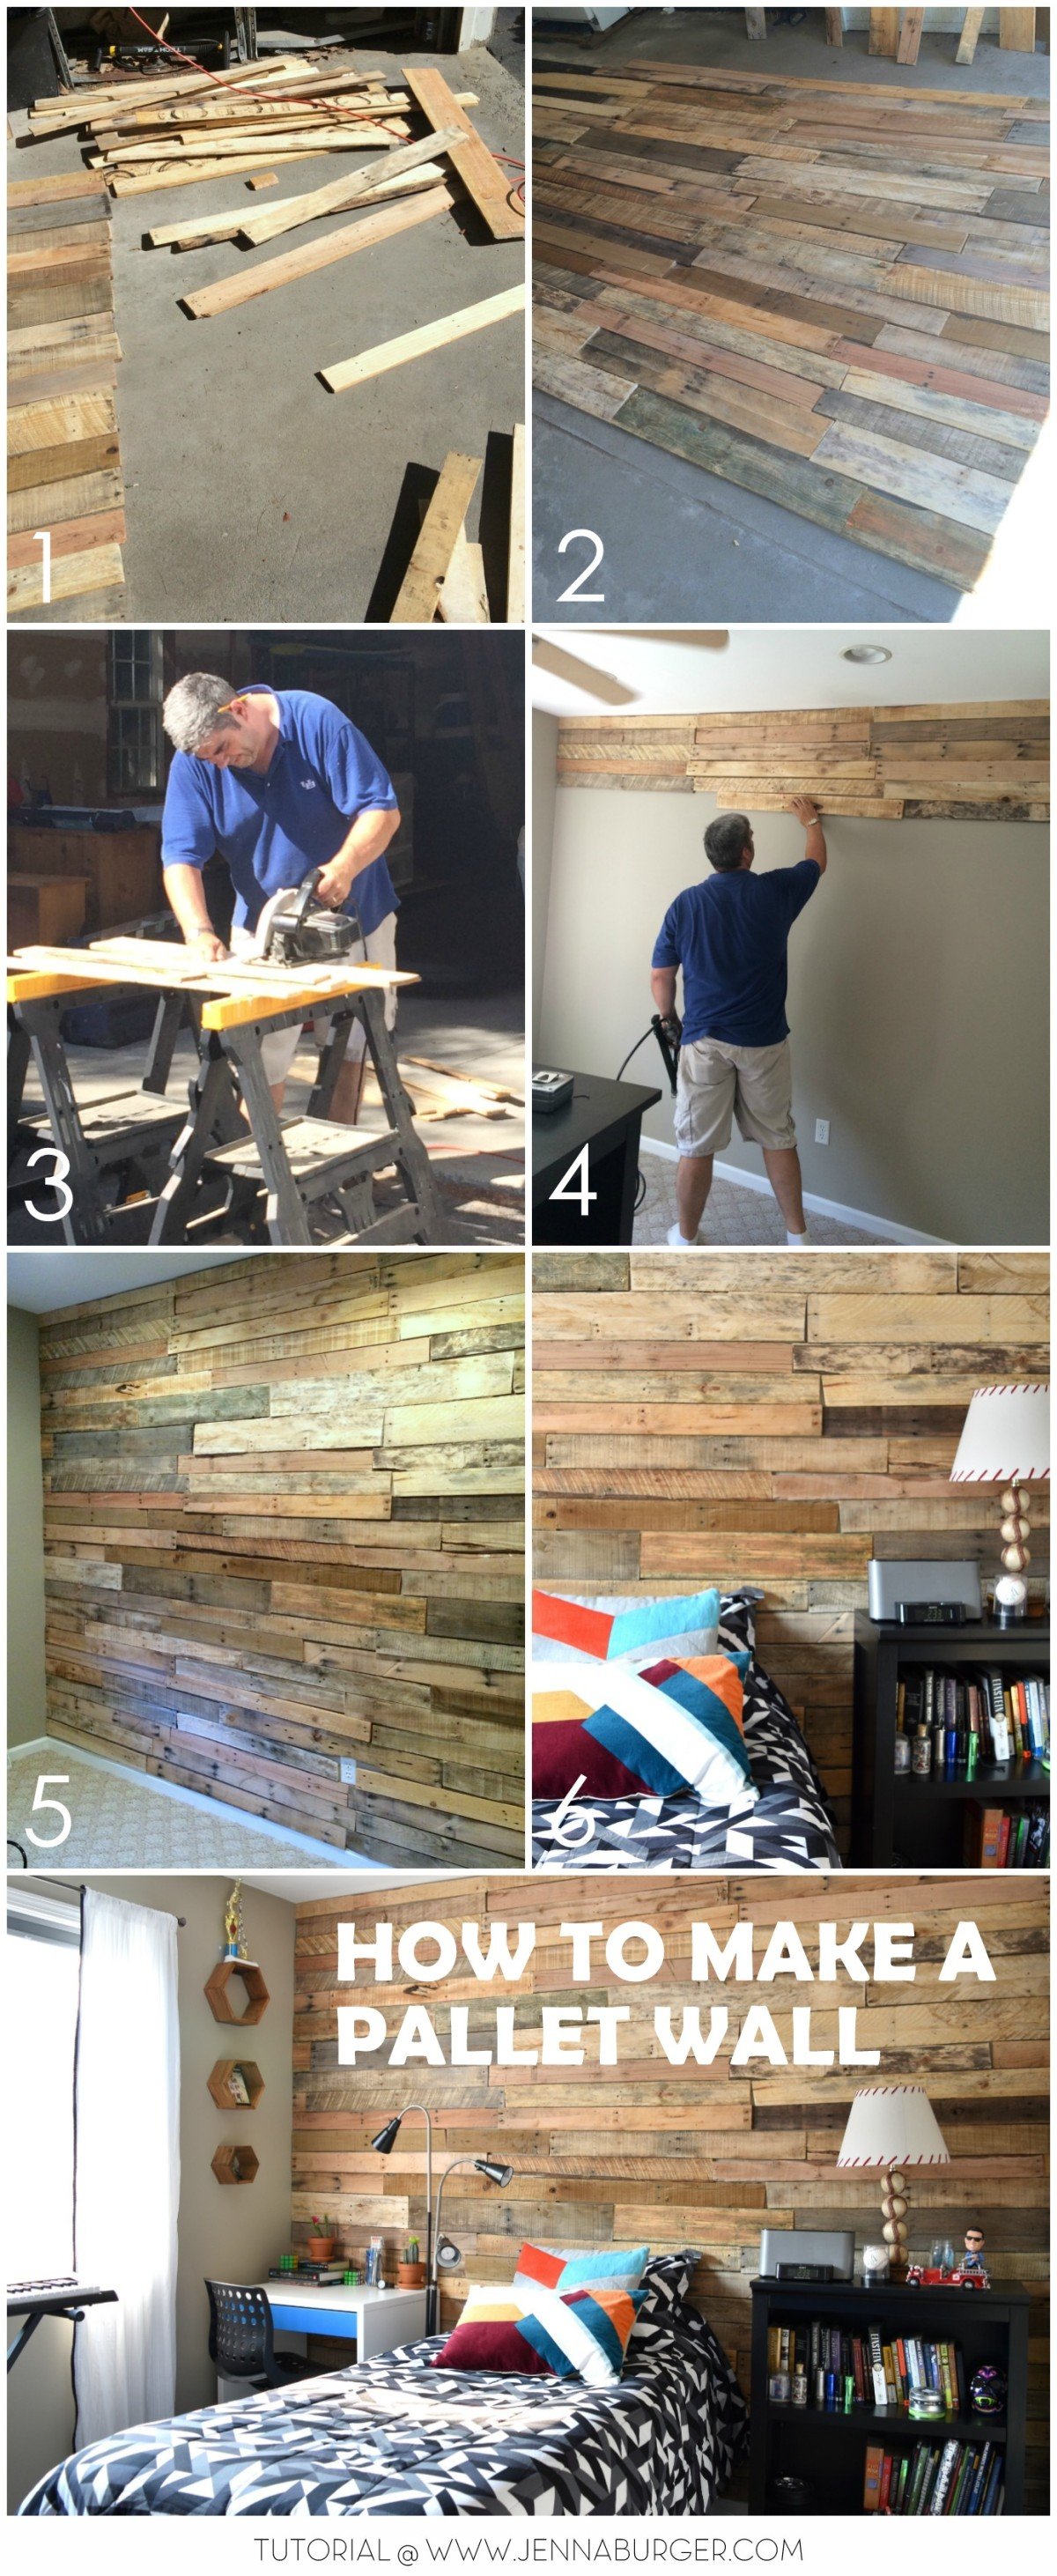 Modern Rustic Teen Room DIY Pallet Wall Tutorial Jenna Burger